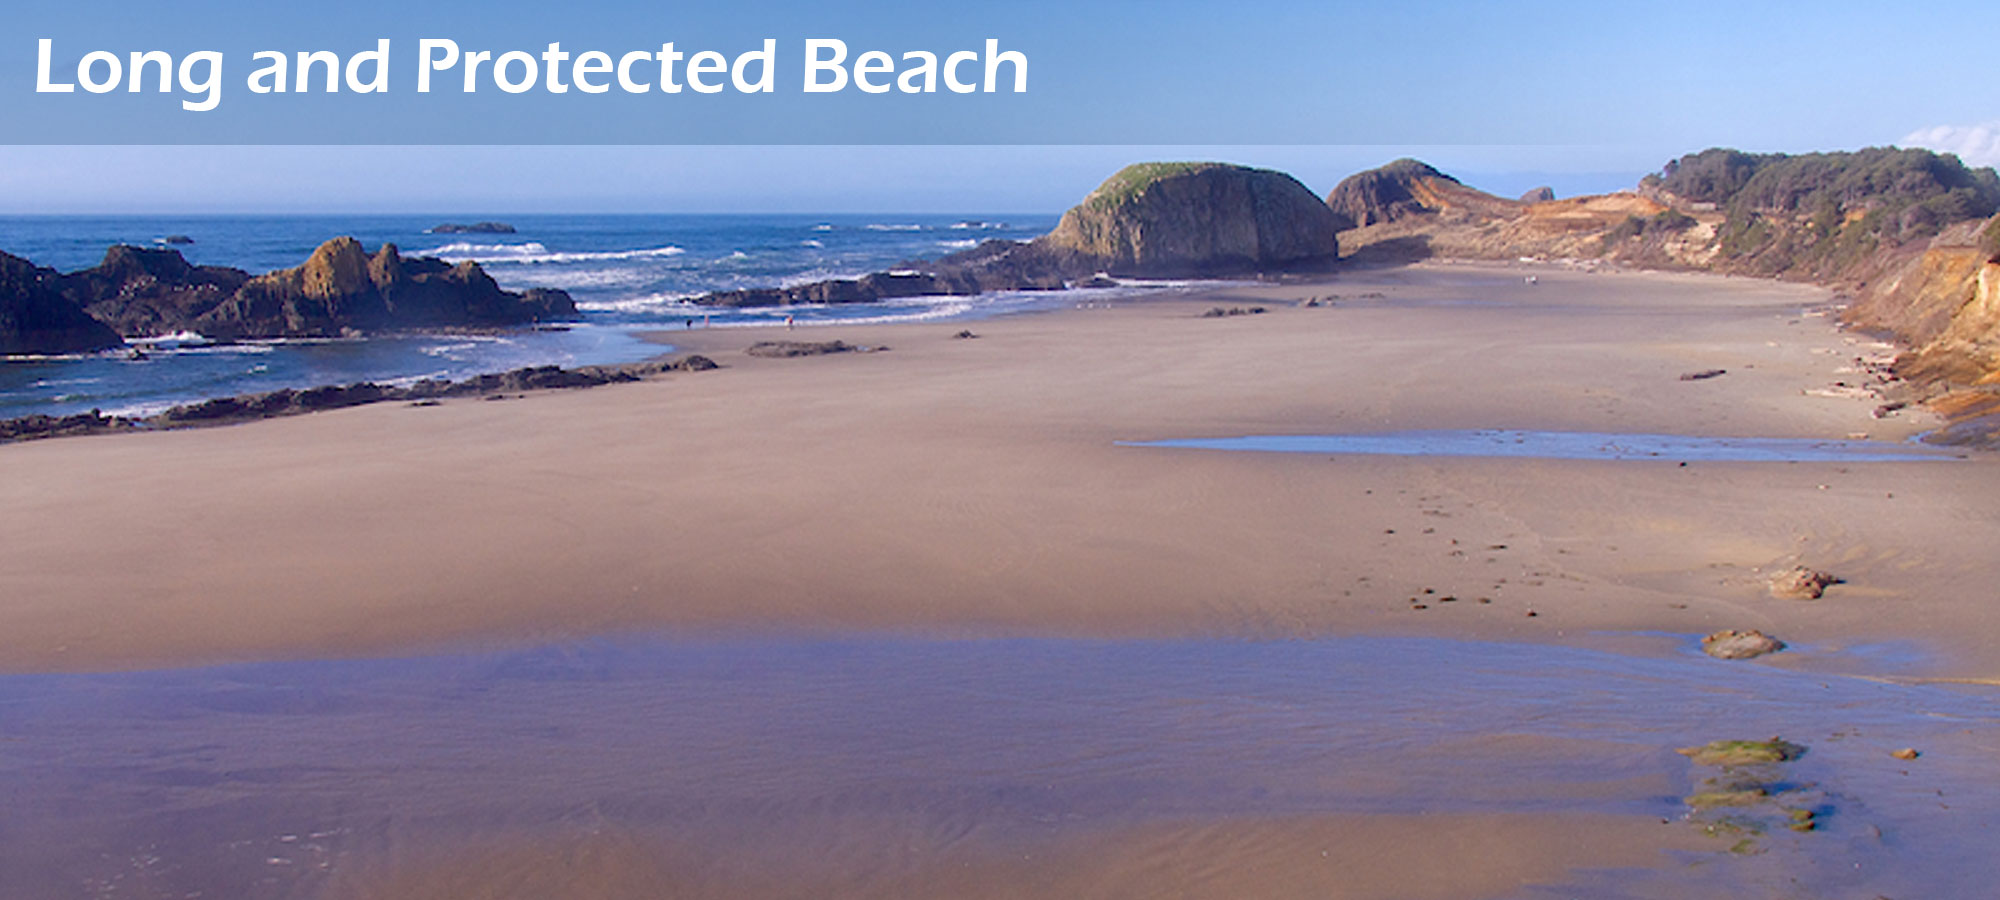 Long and Protected Beach